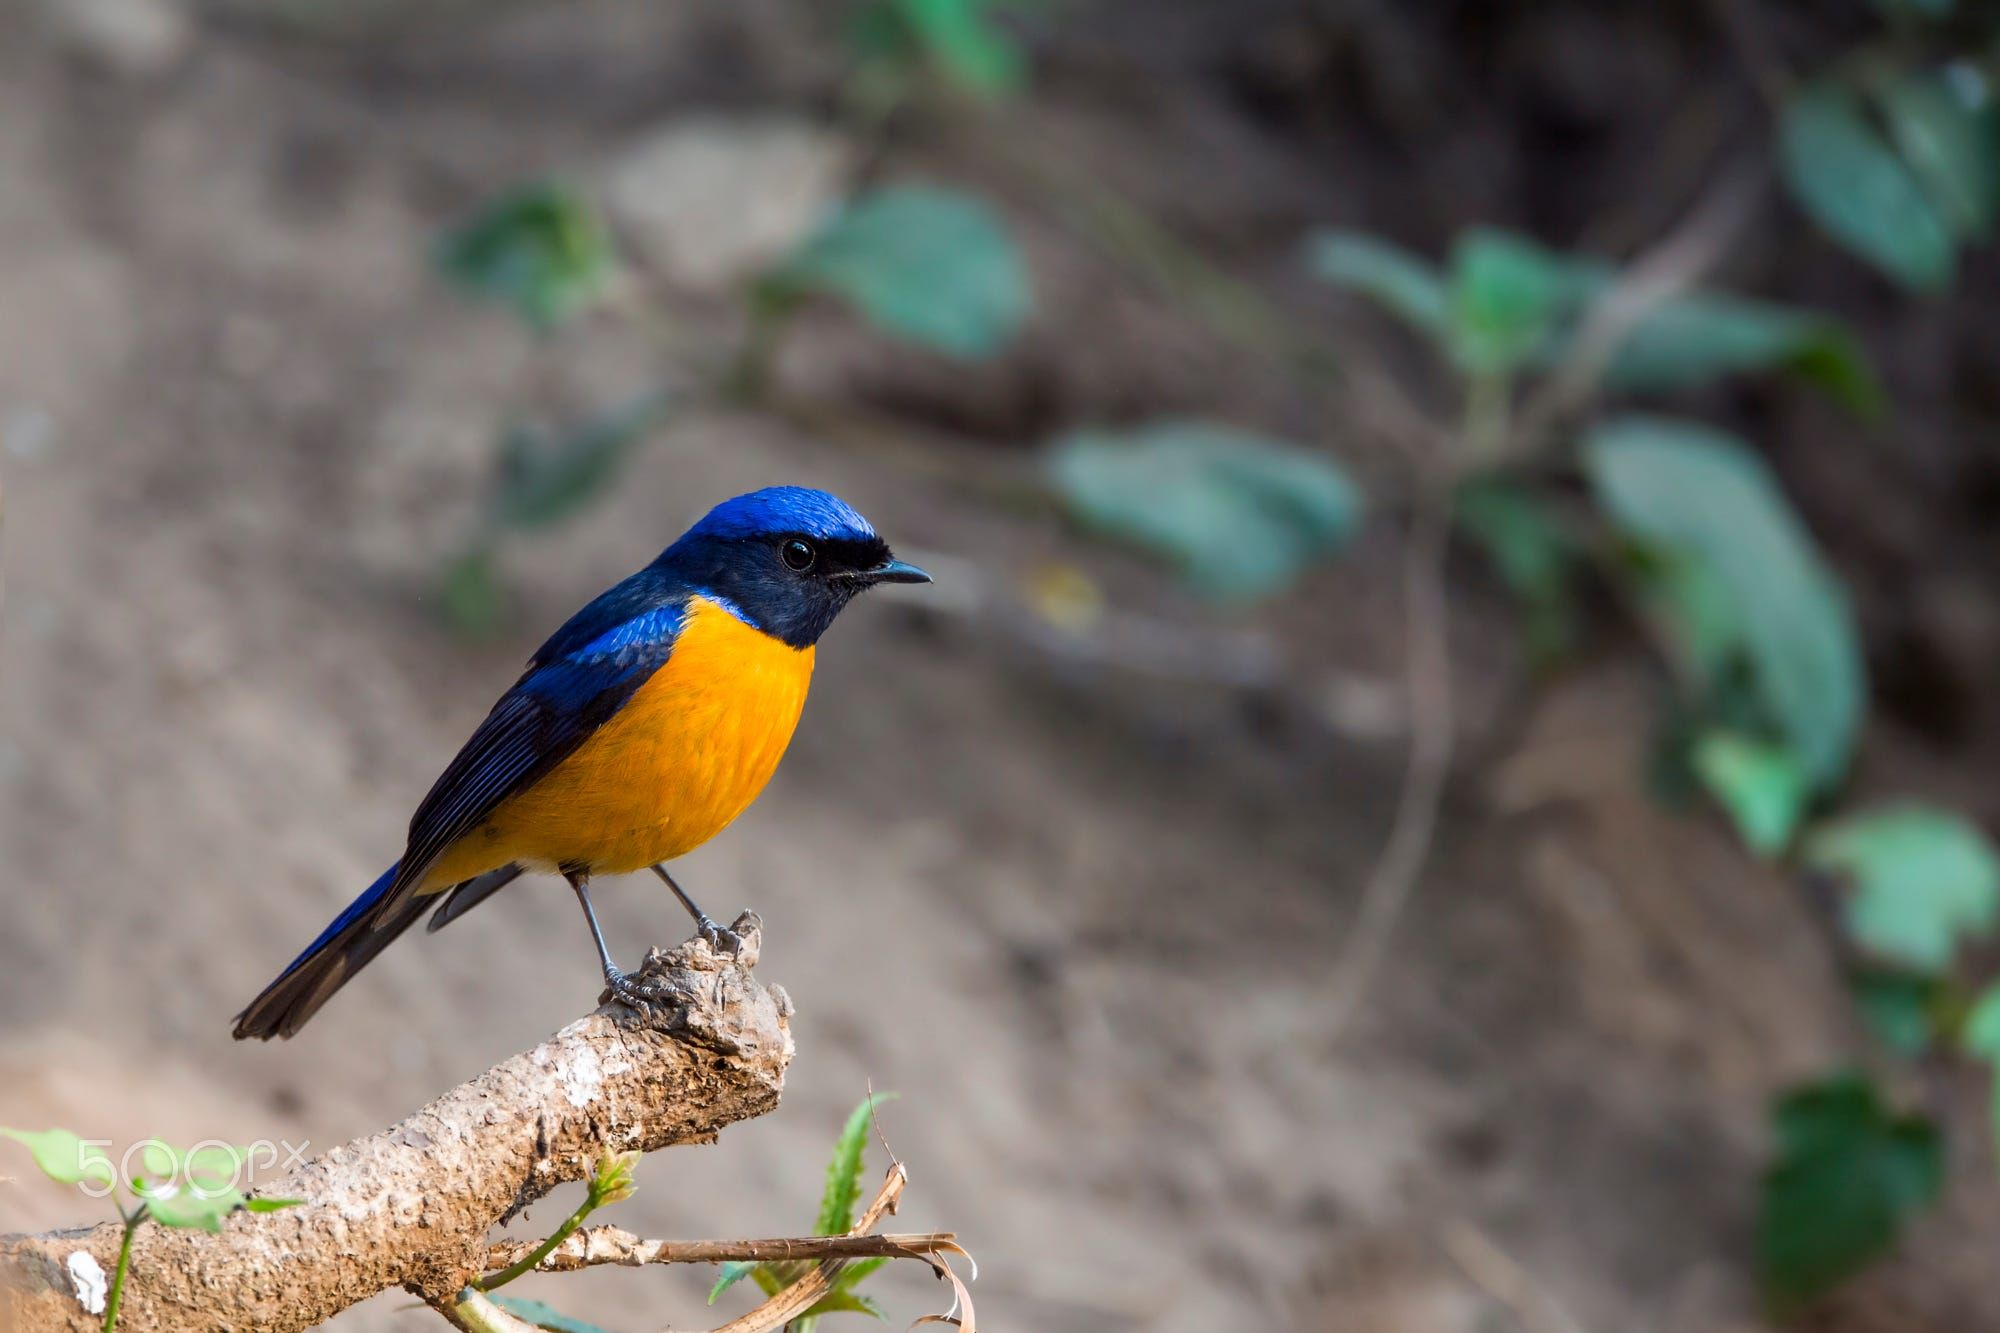 The rufousbellied niltava is a species of bird in the